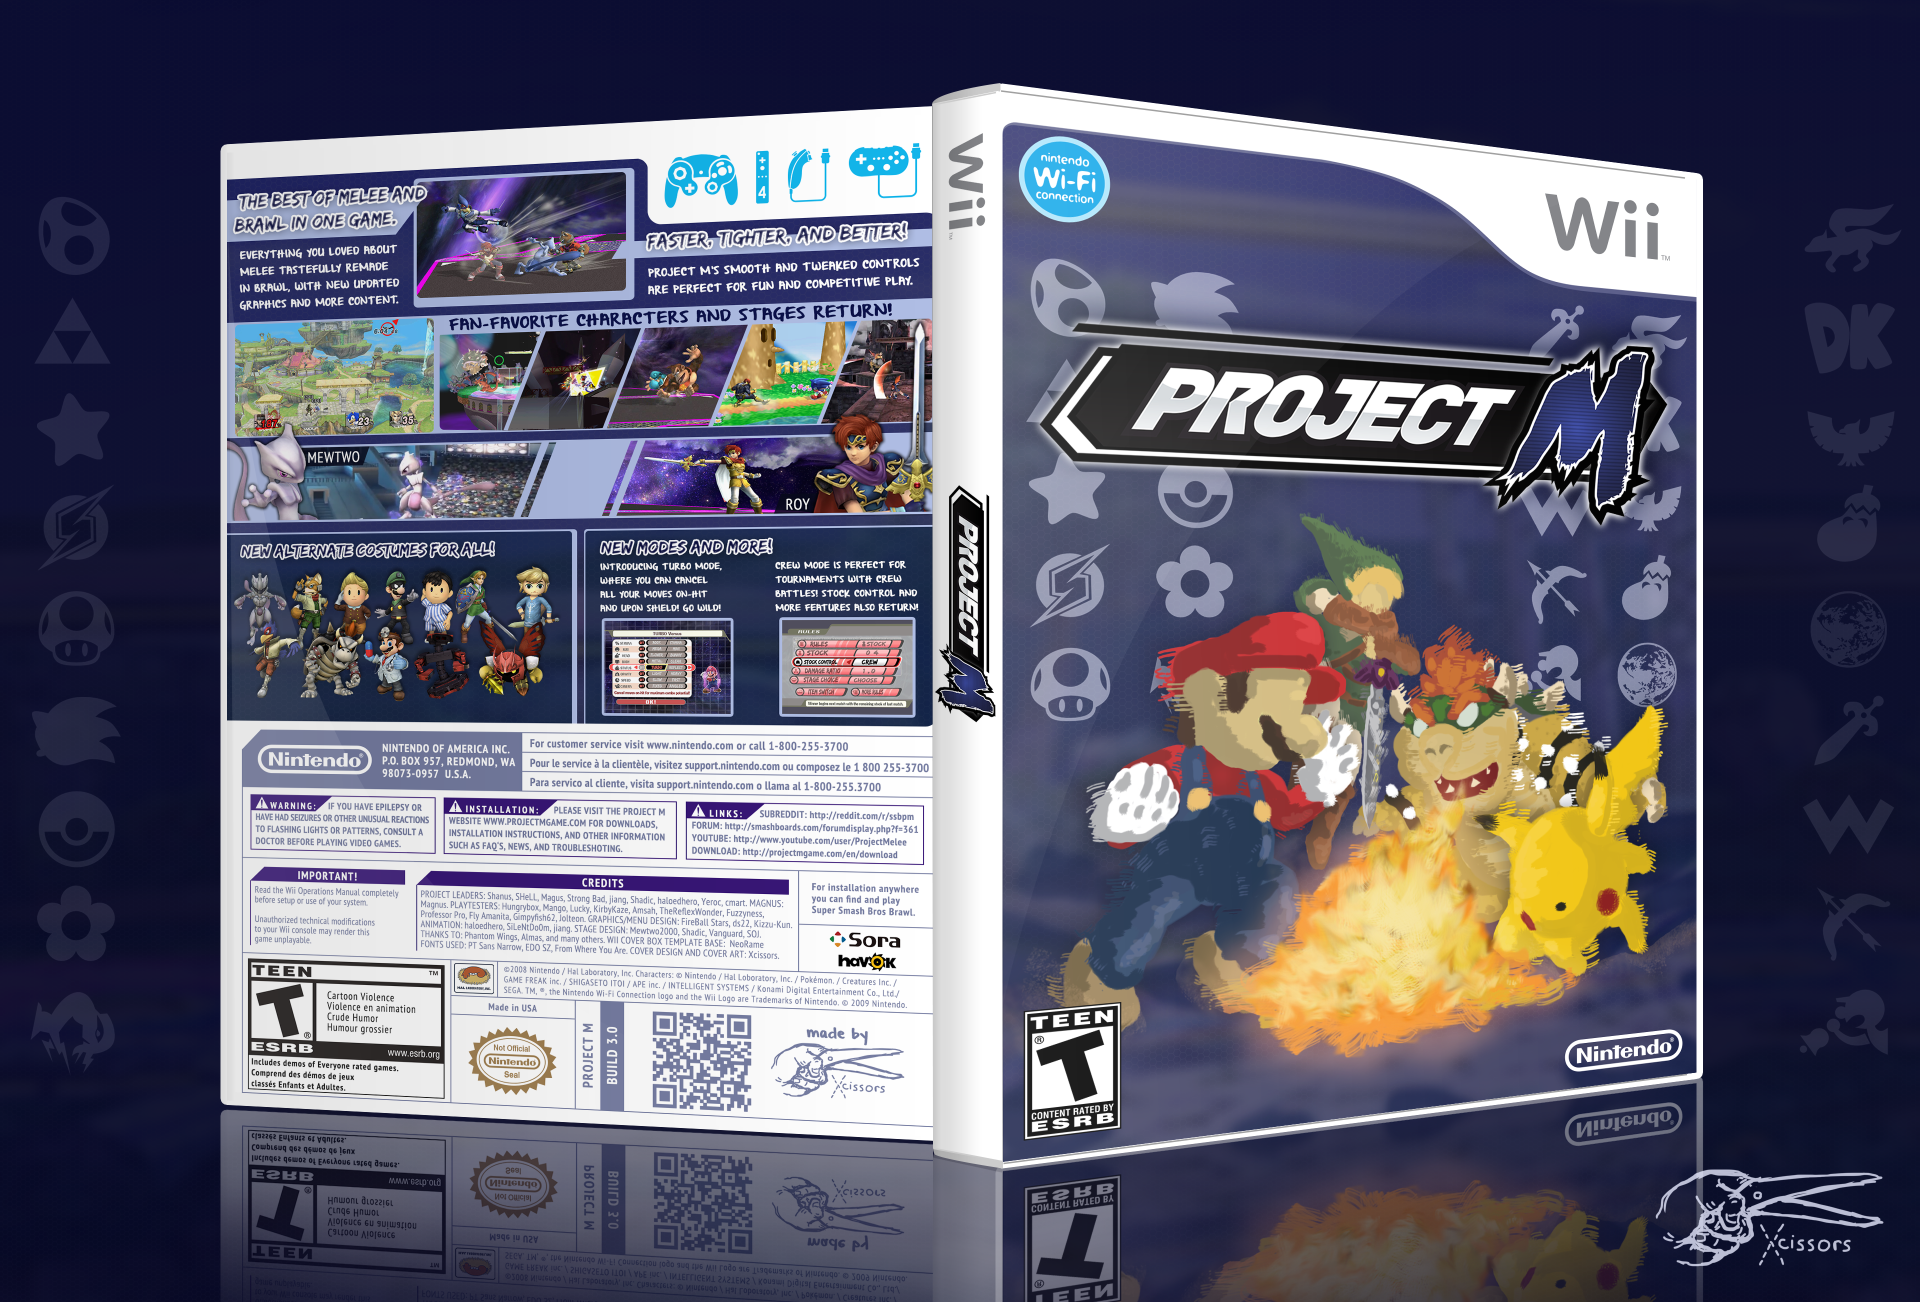 project m brawl Note that this guide is made for project m versions 2  since people frequently  ask for instructions on getting brawl mods working, i decided to.